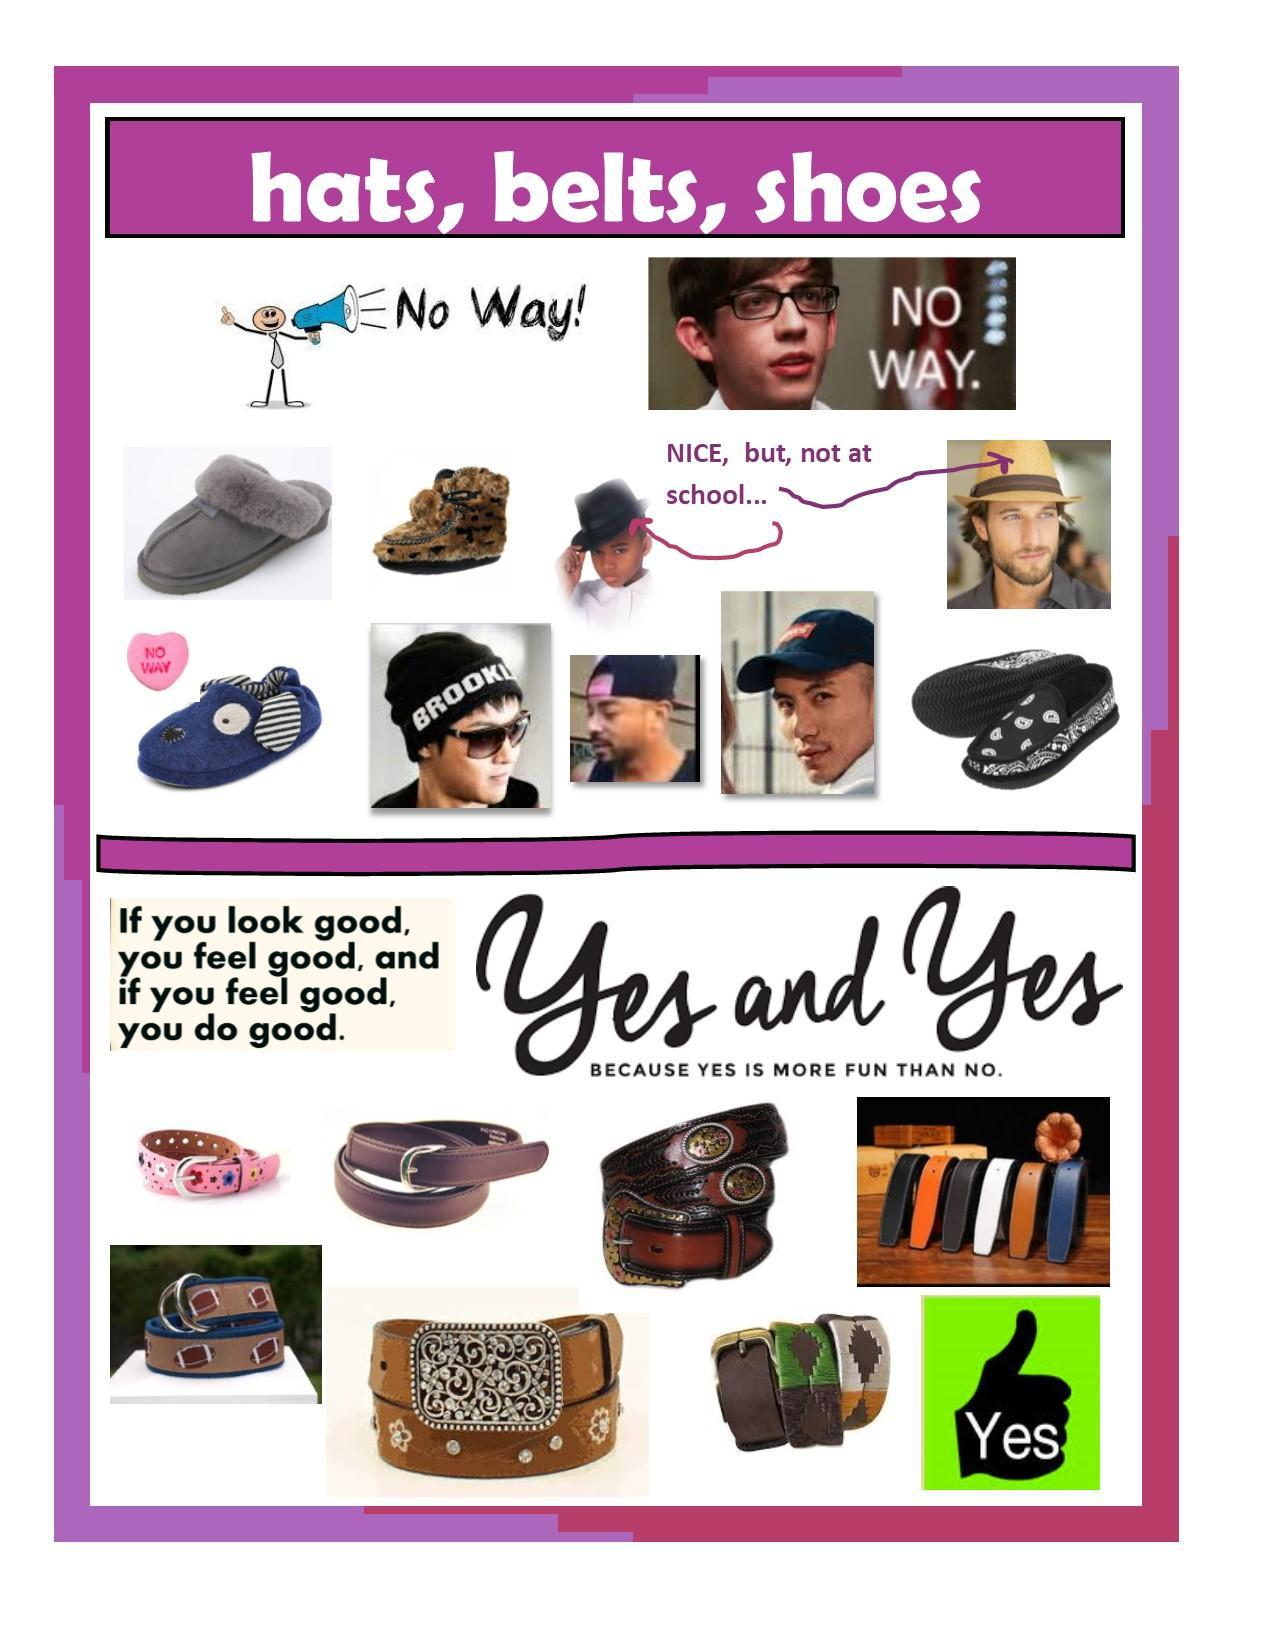 hats shoes belts for dress code flyer